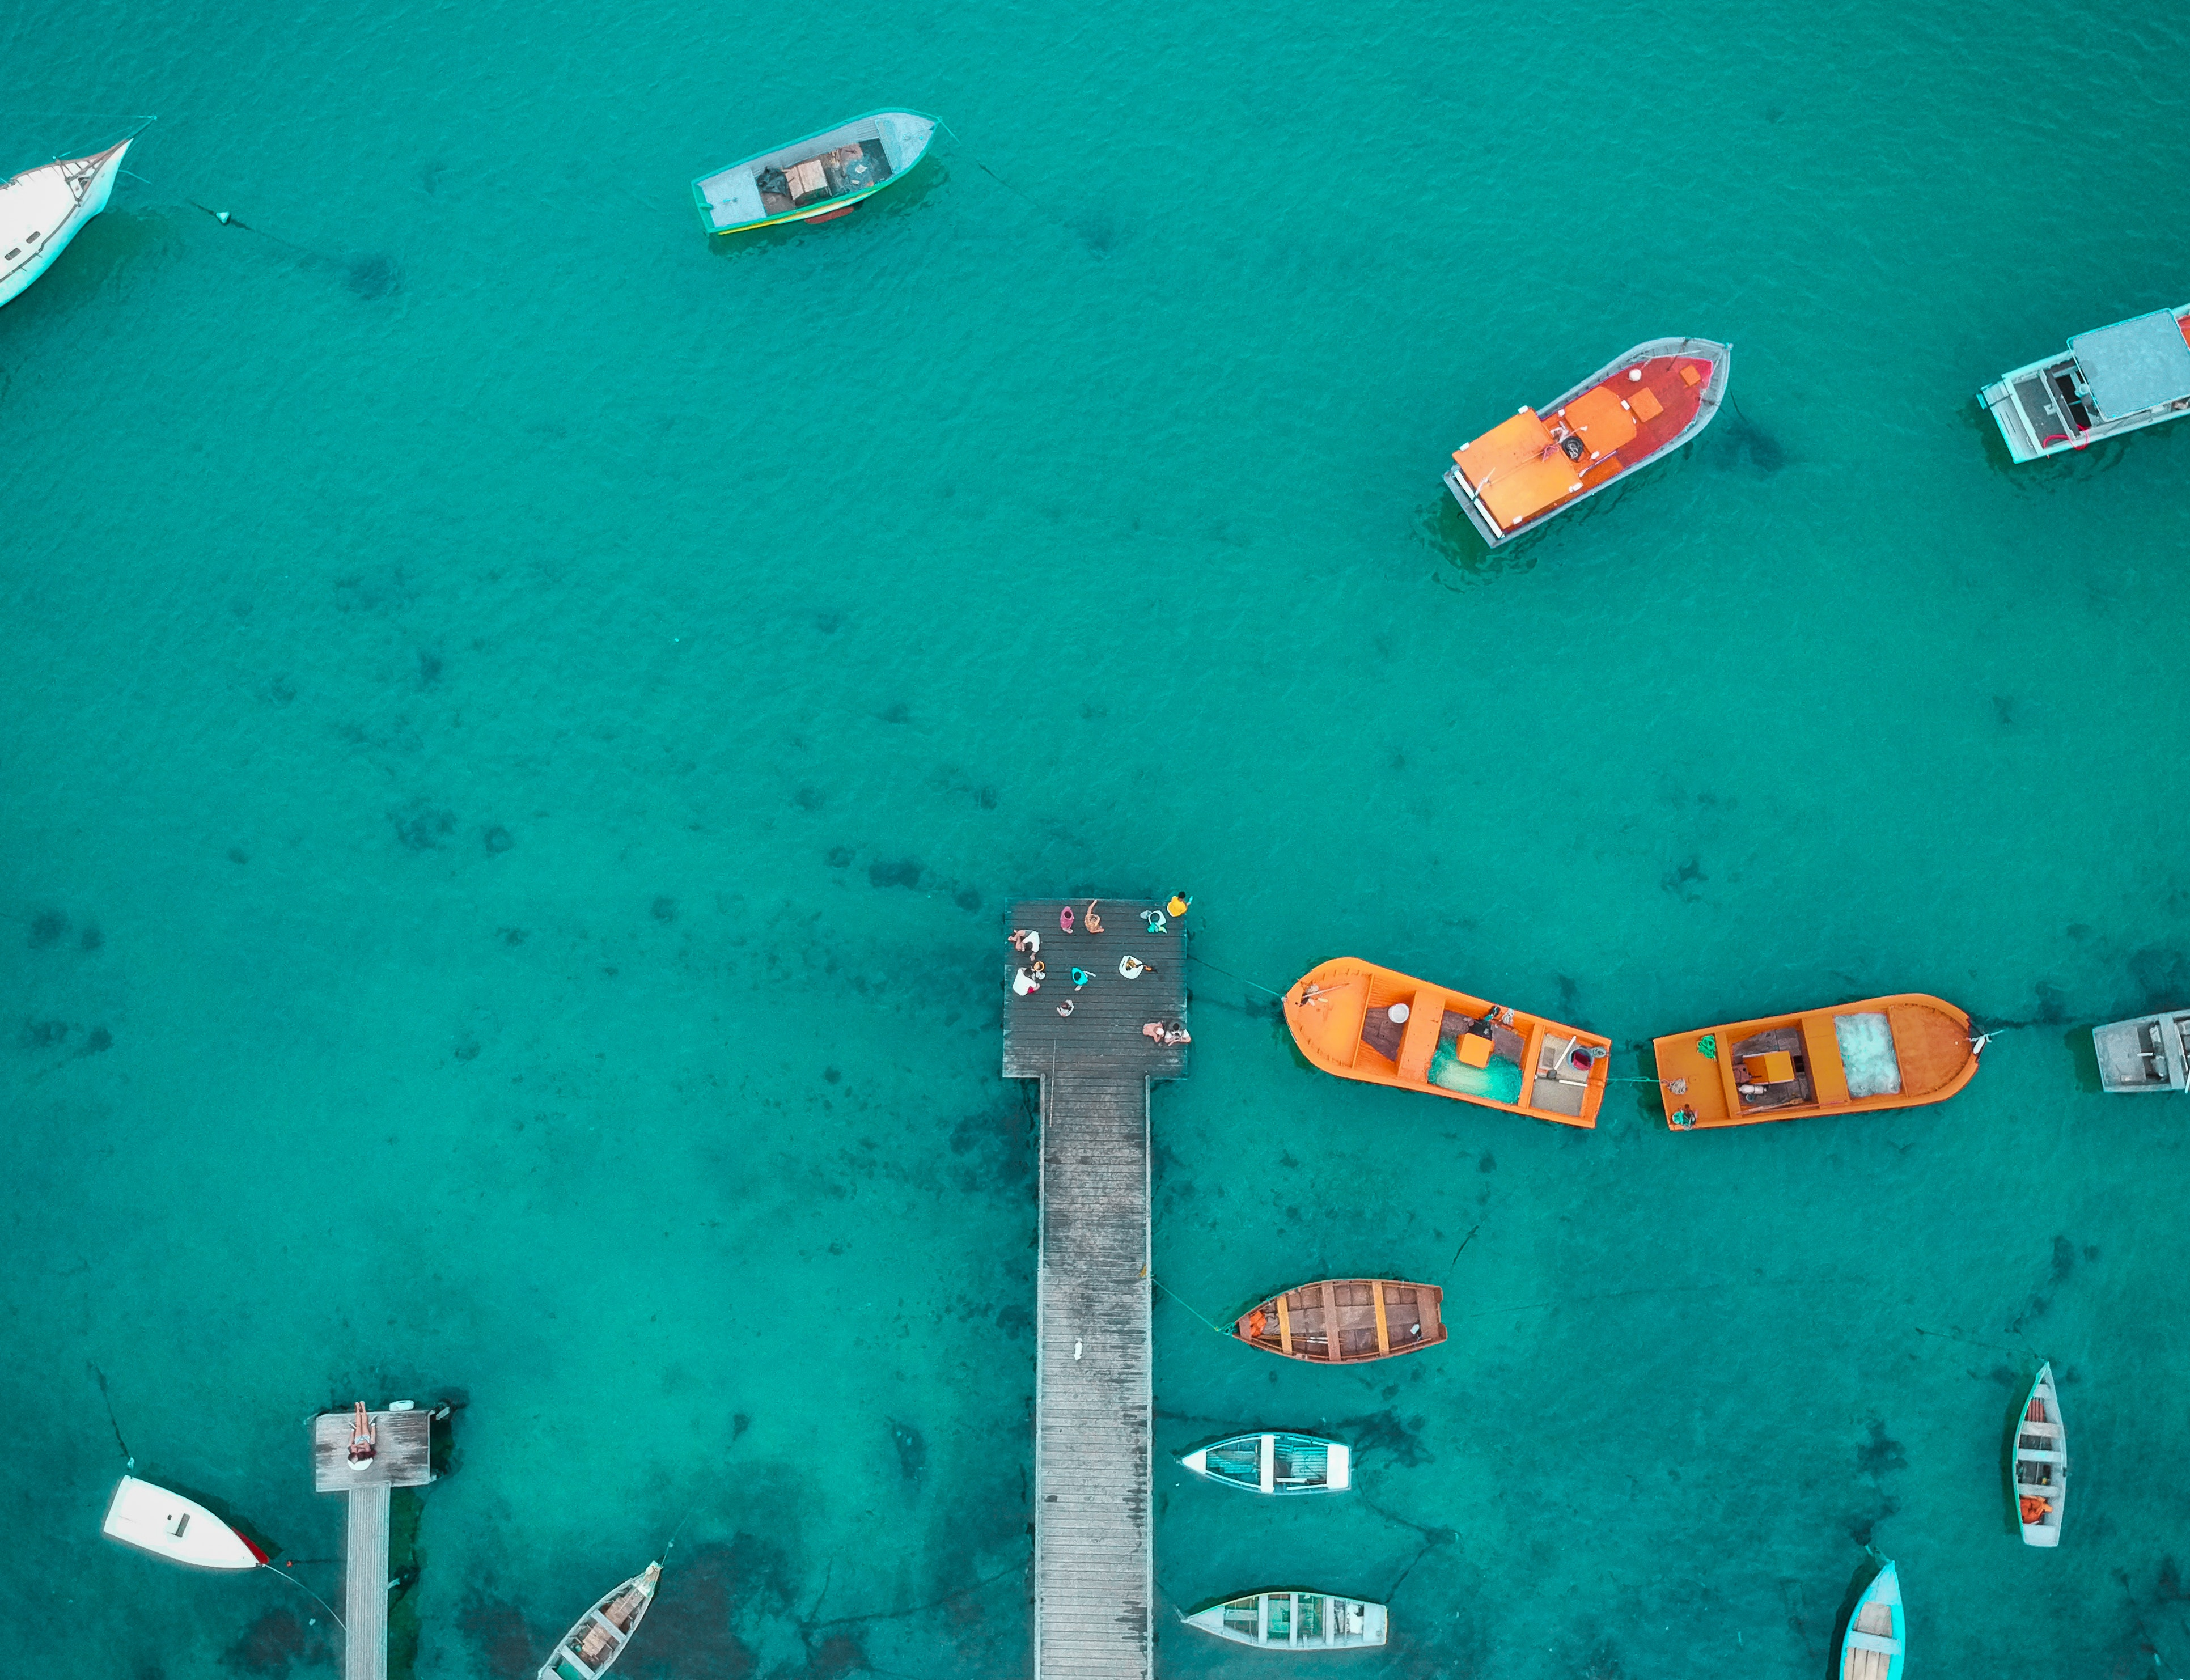 Aerial View of Boat Dock, Aerial view, Bird's eye view, Boats, Colors, HQ Photo